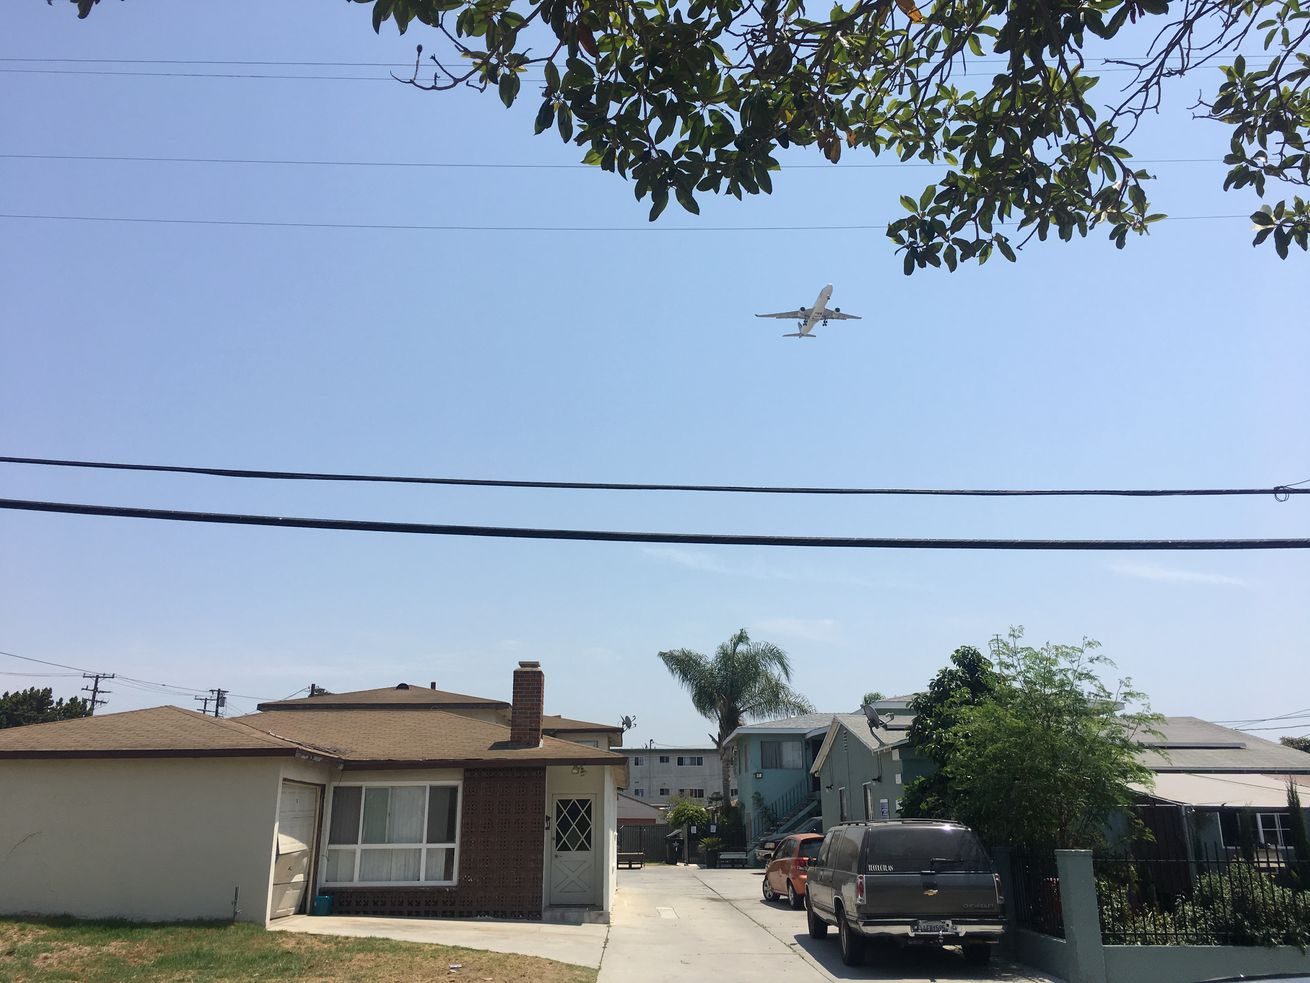 Fewer than 35 percent of homesin Inglewood are owner-occupied.